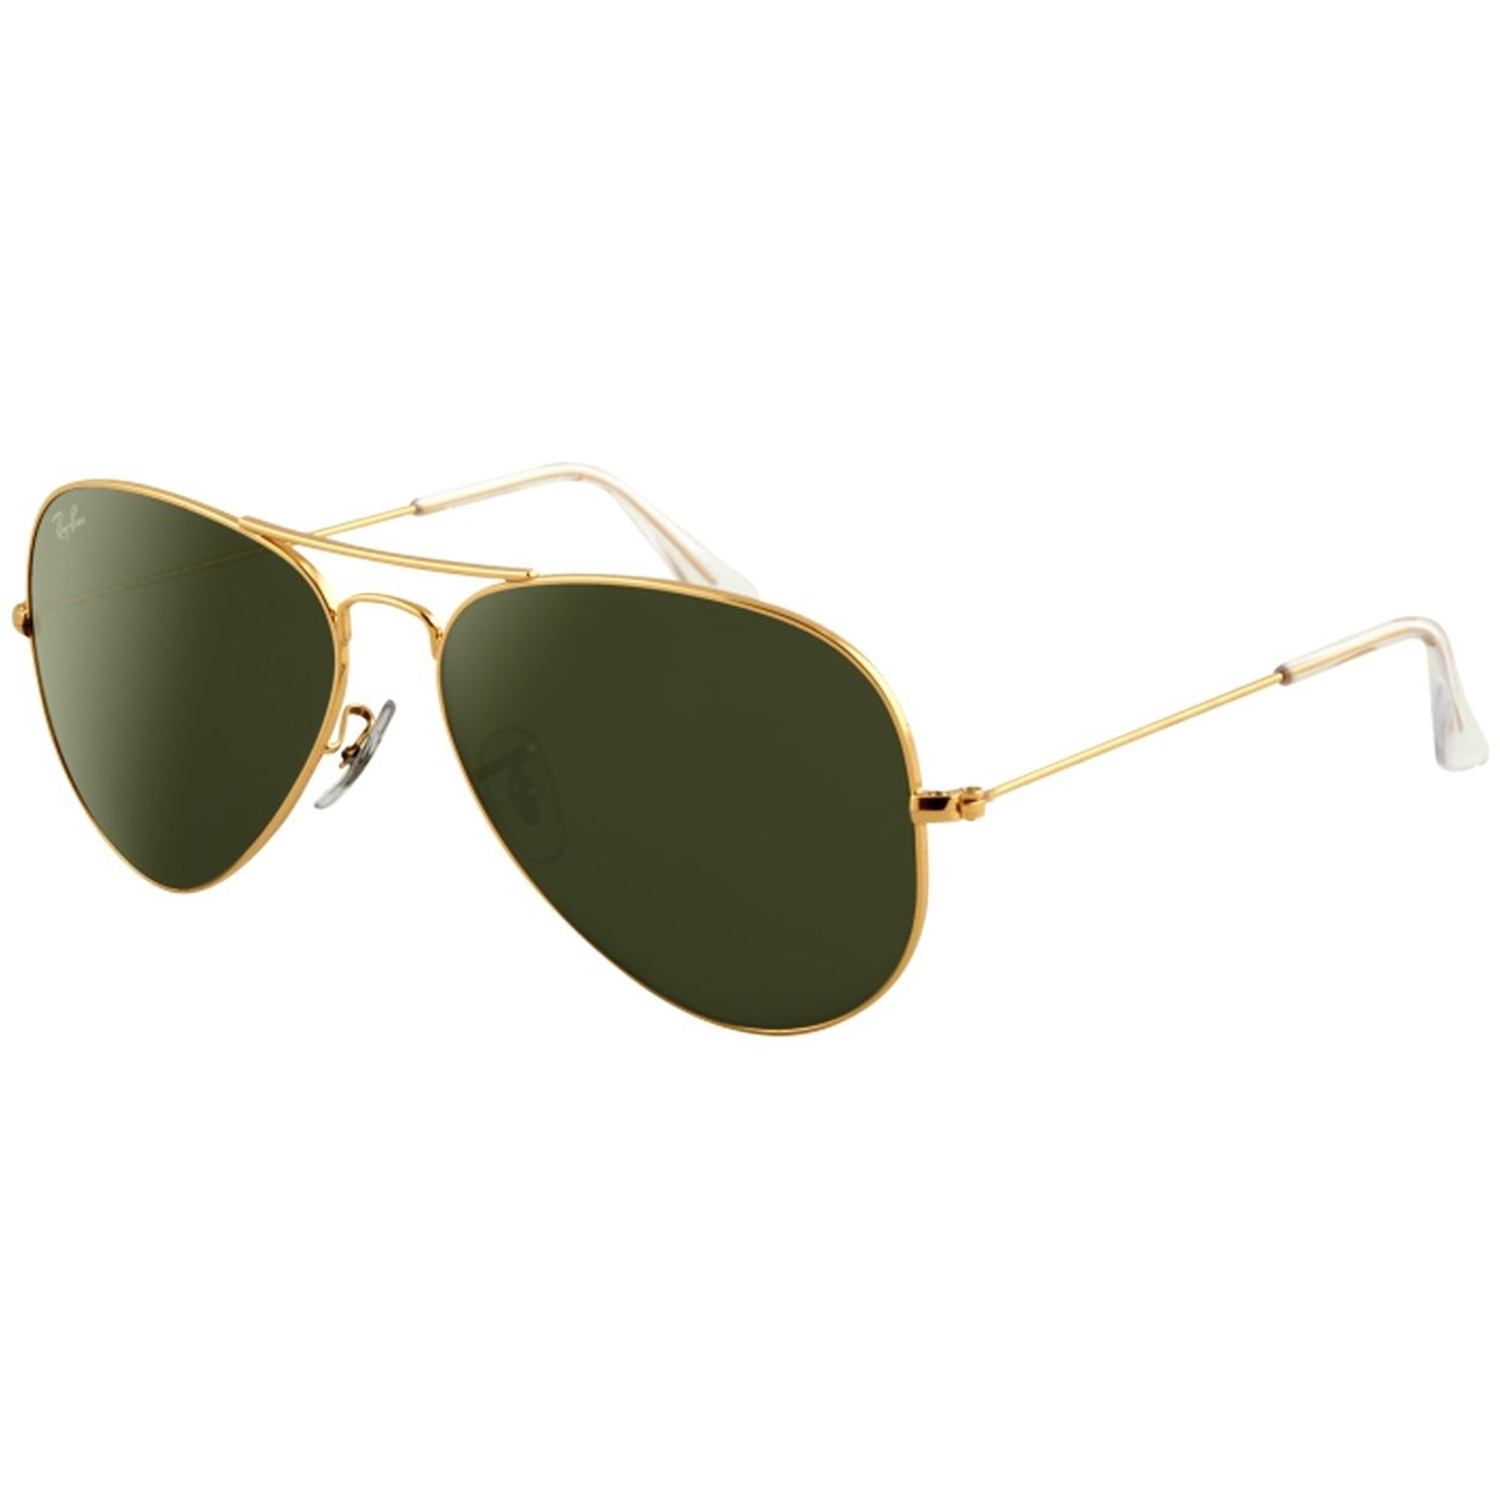 ray ban aviator 3025 gold gradient smoke sunglasses